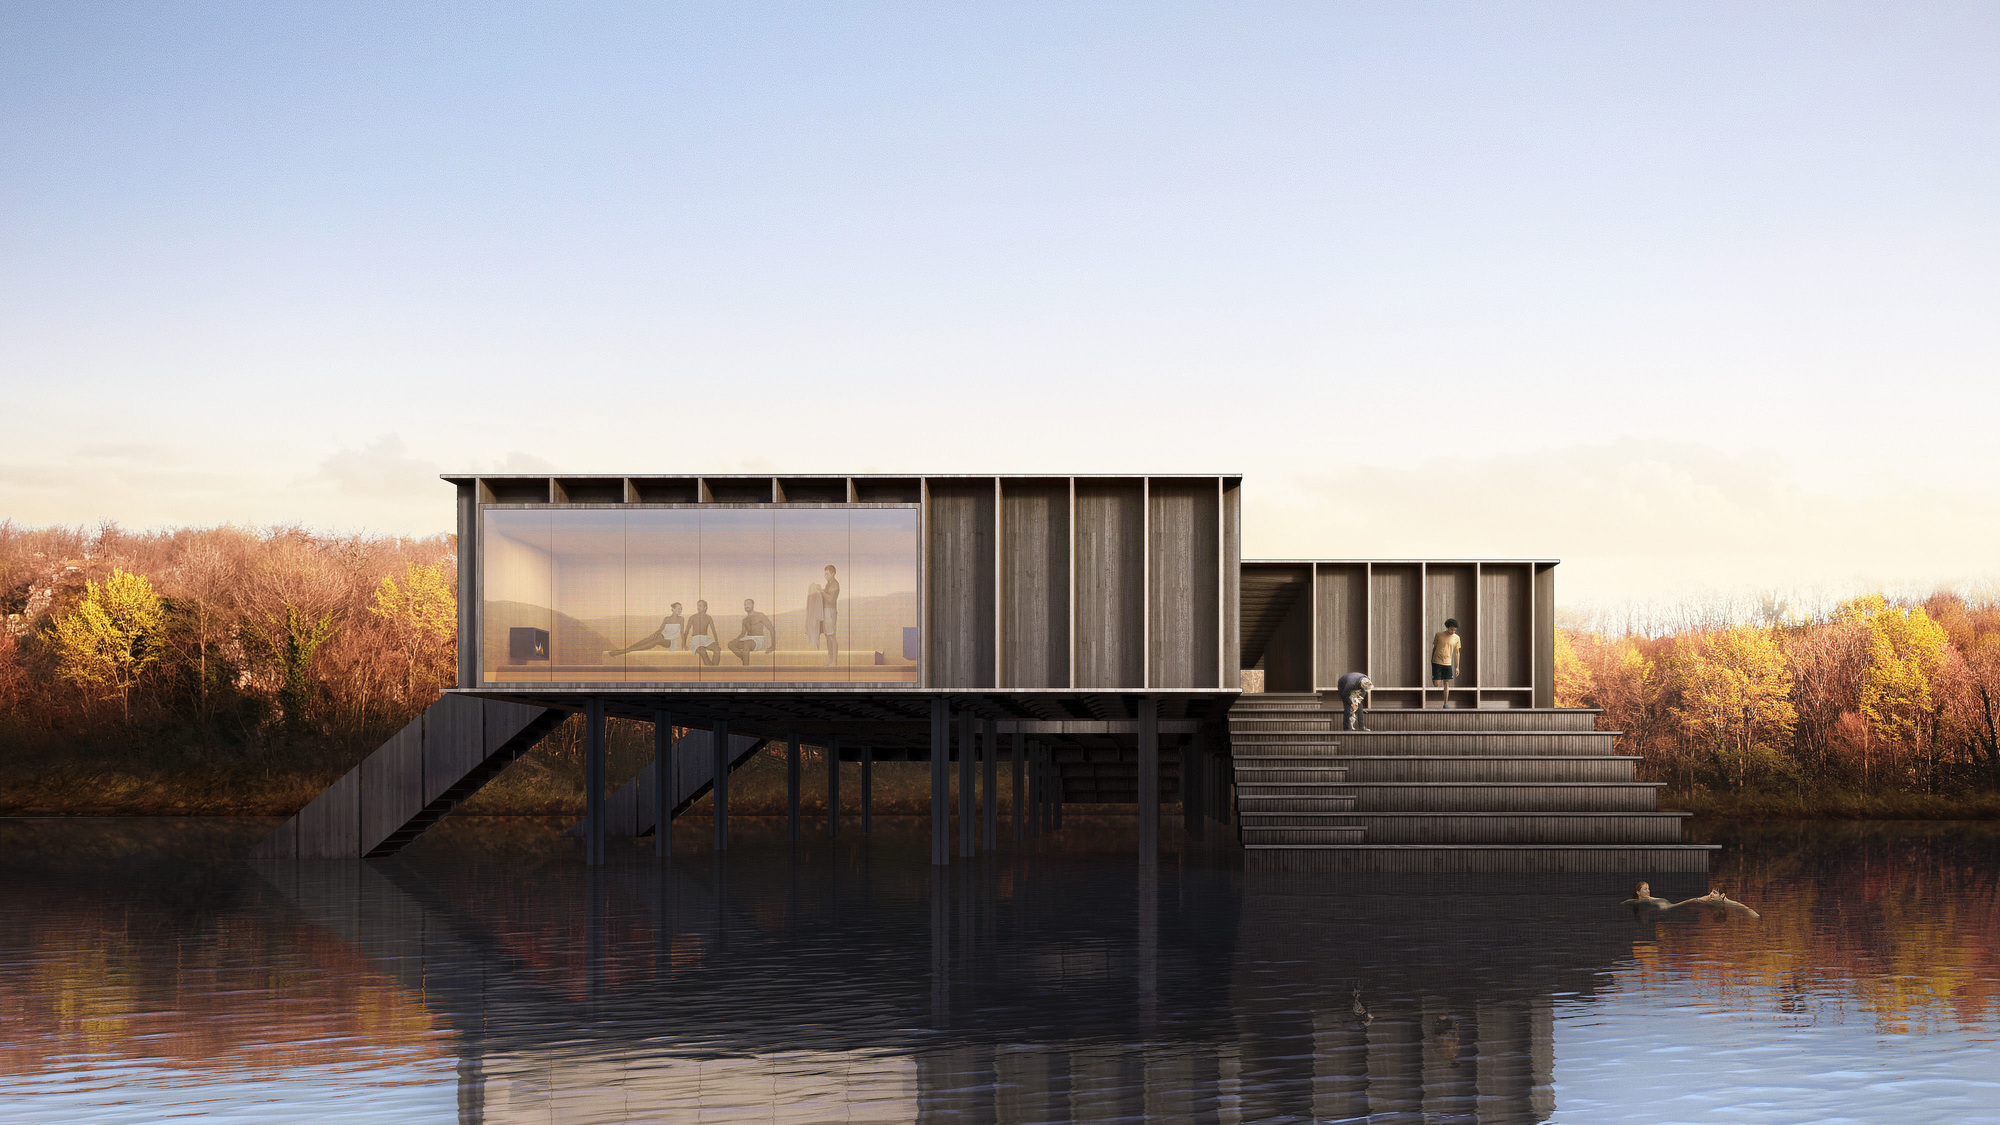 swedish arkitekter sweden bathhouse architects traditional architecture architect joenkoeping kallbadhus cold archdaily project joenkoeping bathhouses take bathing arch contemplative experience